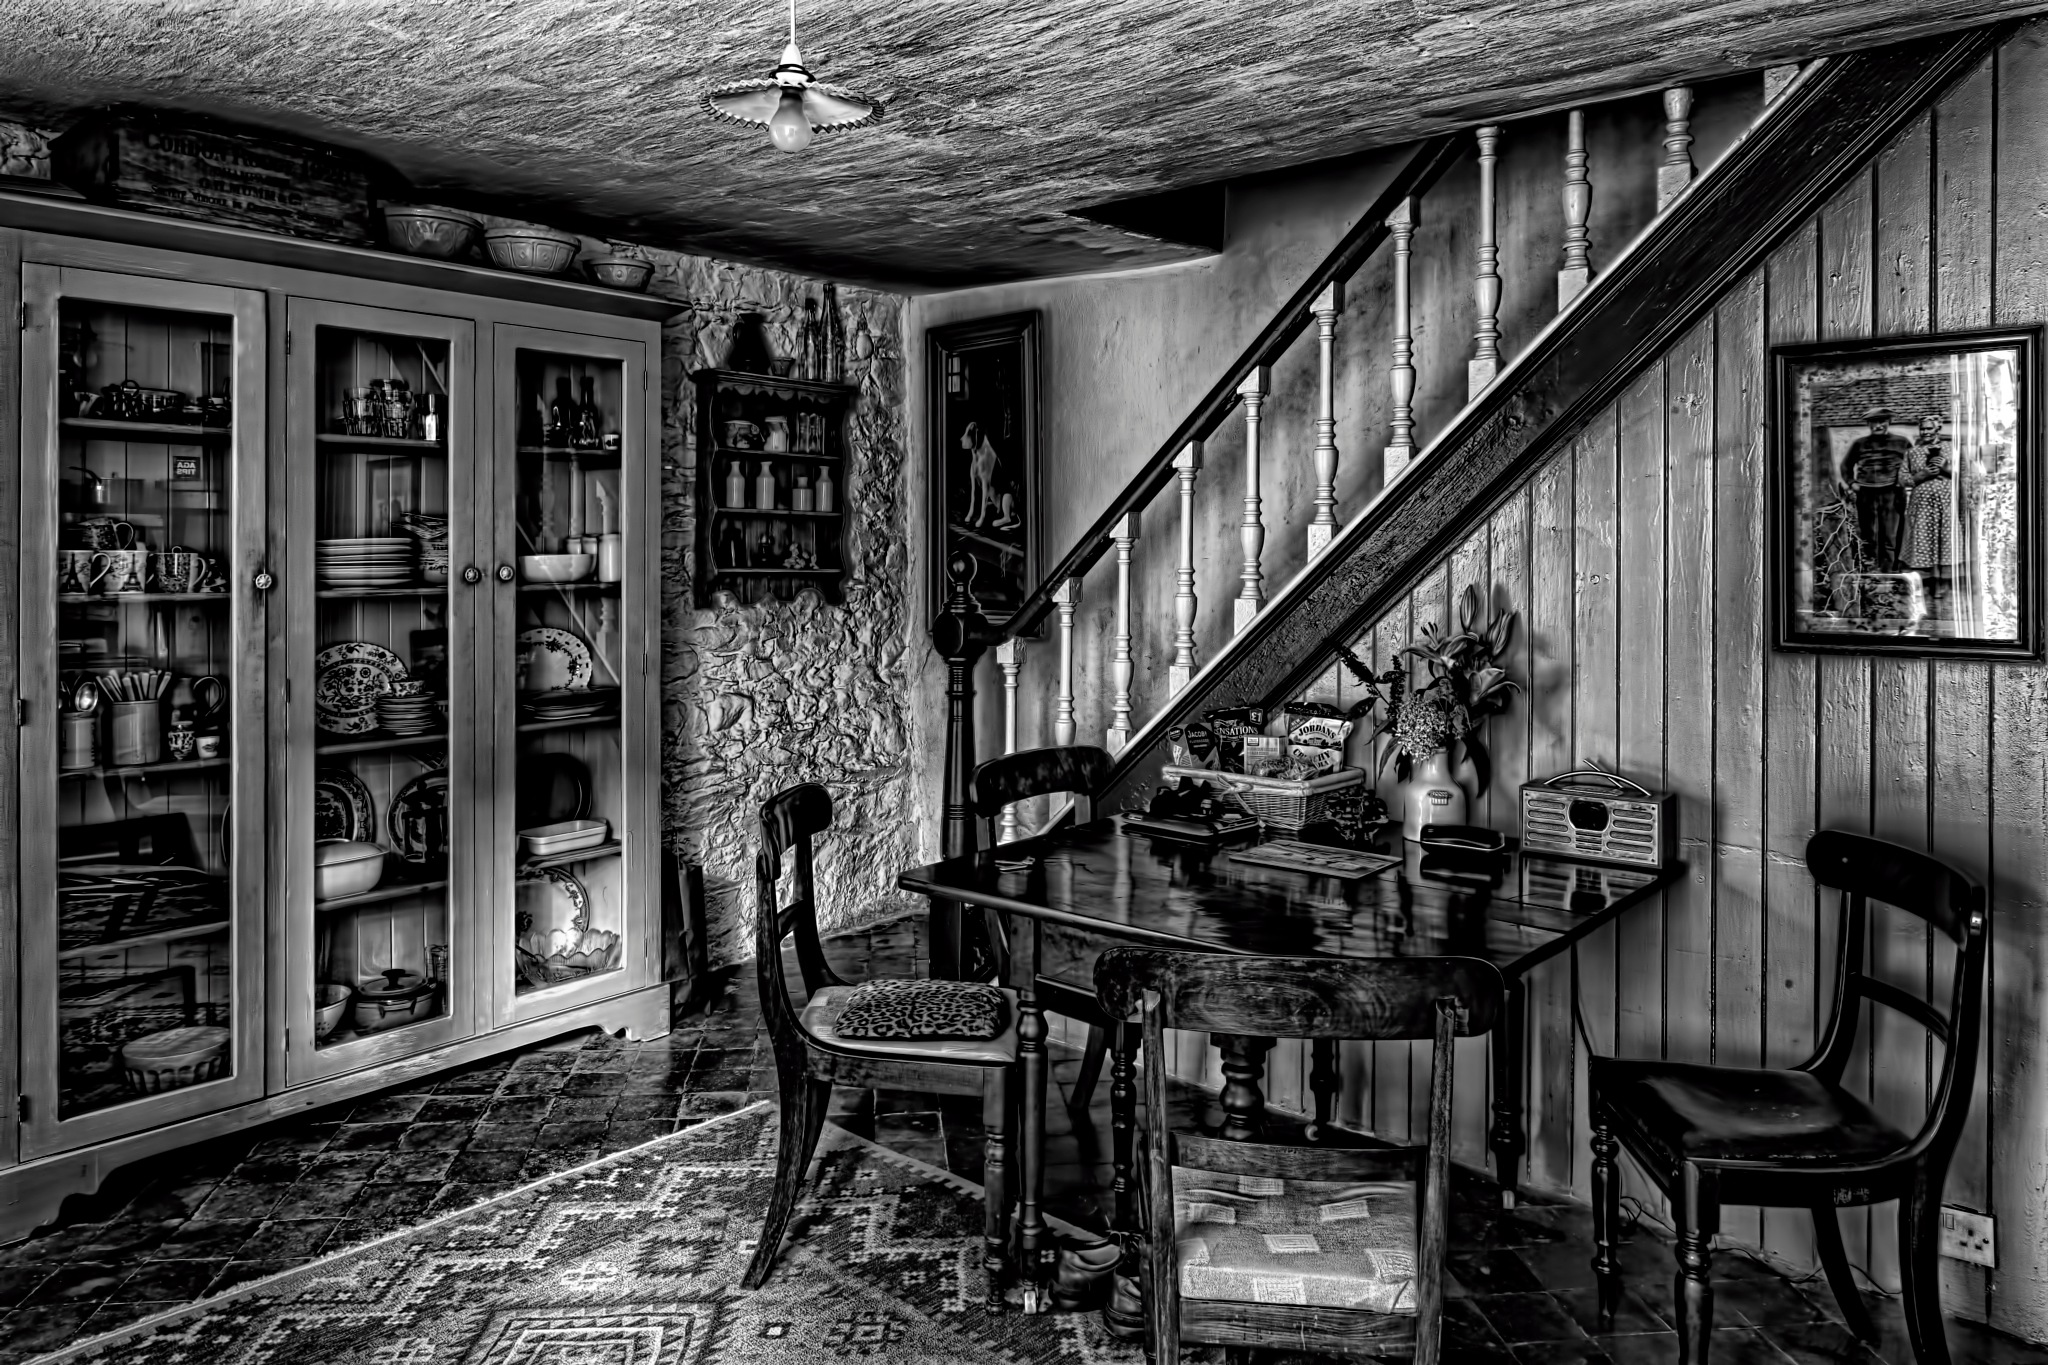 A silent room by Peter Ellison